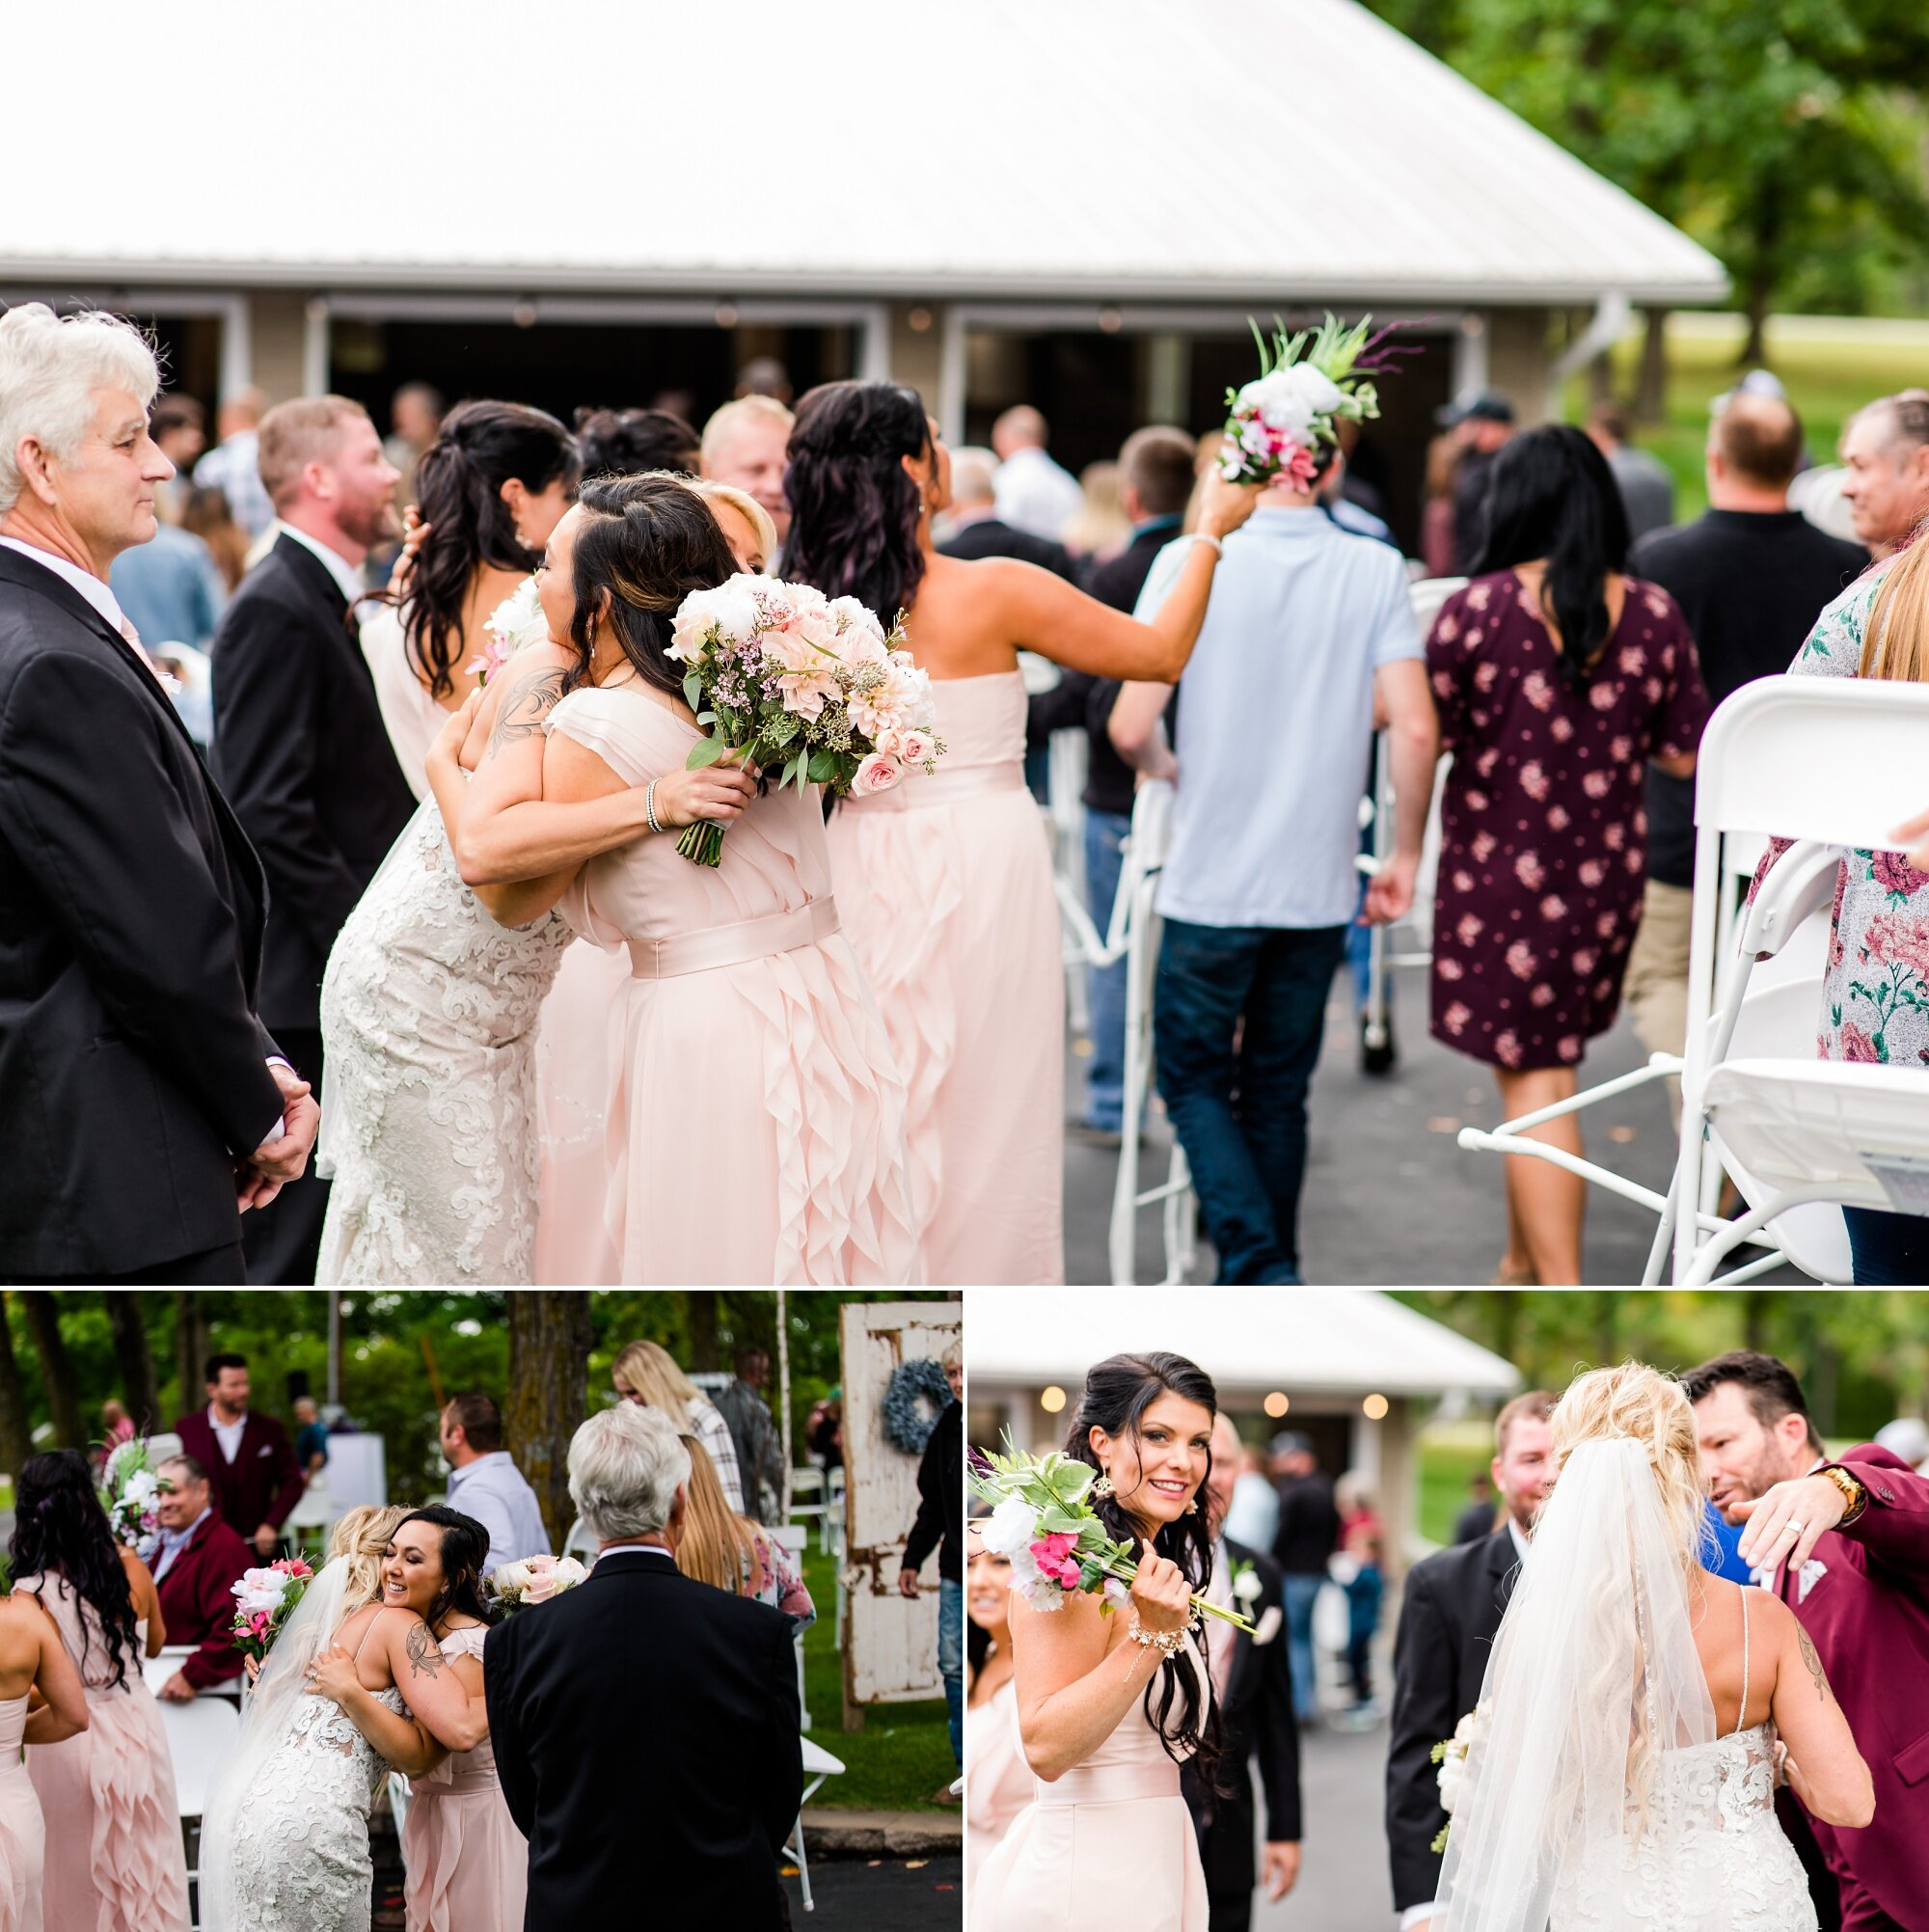 Amber Langerud Photography_Eagle Lake Rustic Styled Outdoor Wedding in Minnesota_6883.jpg